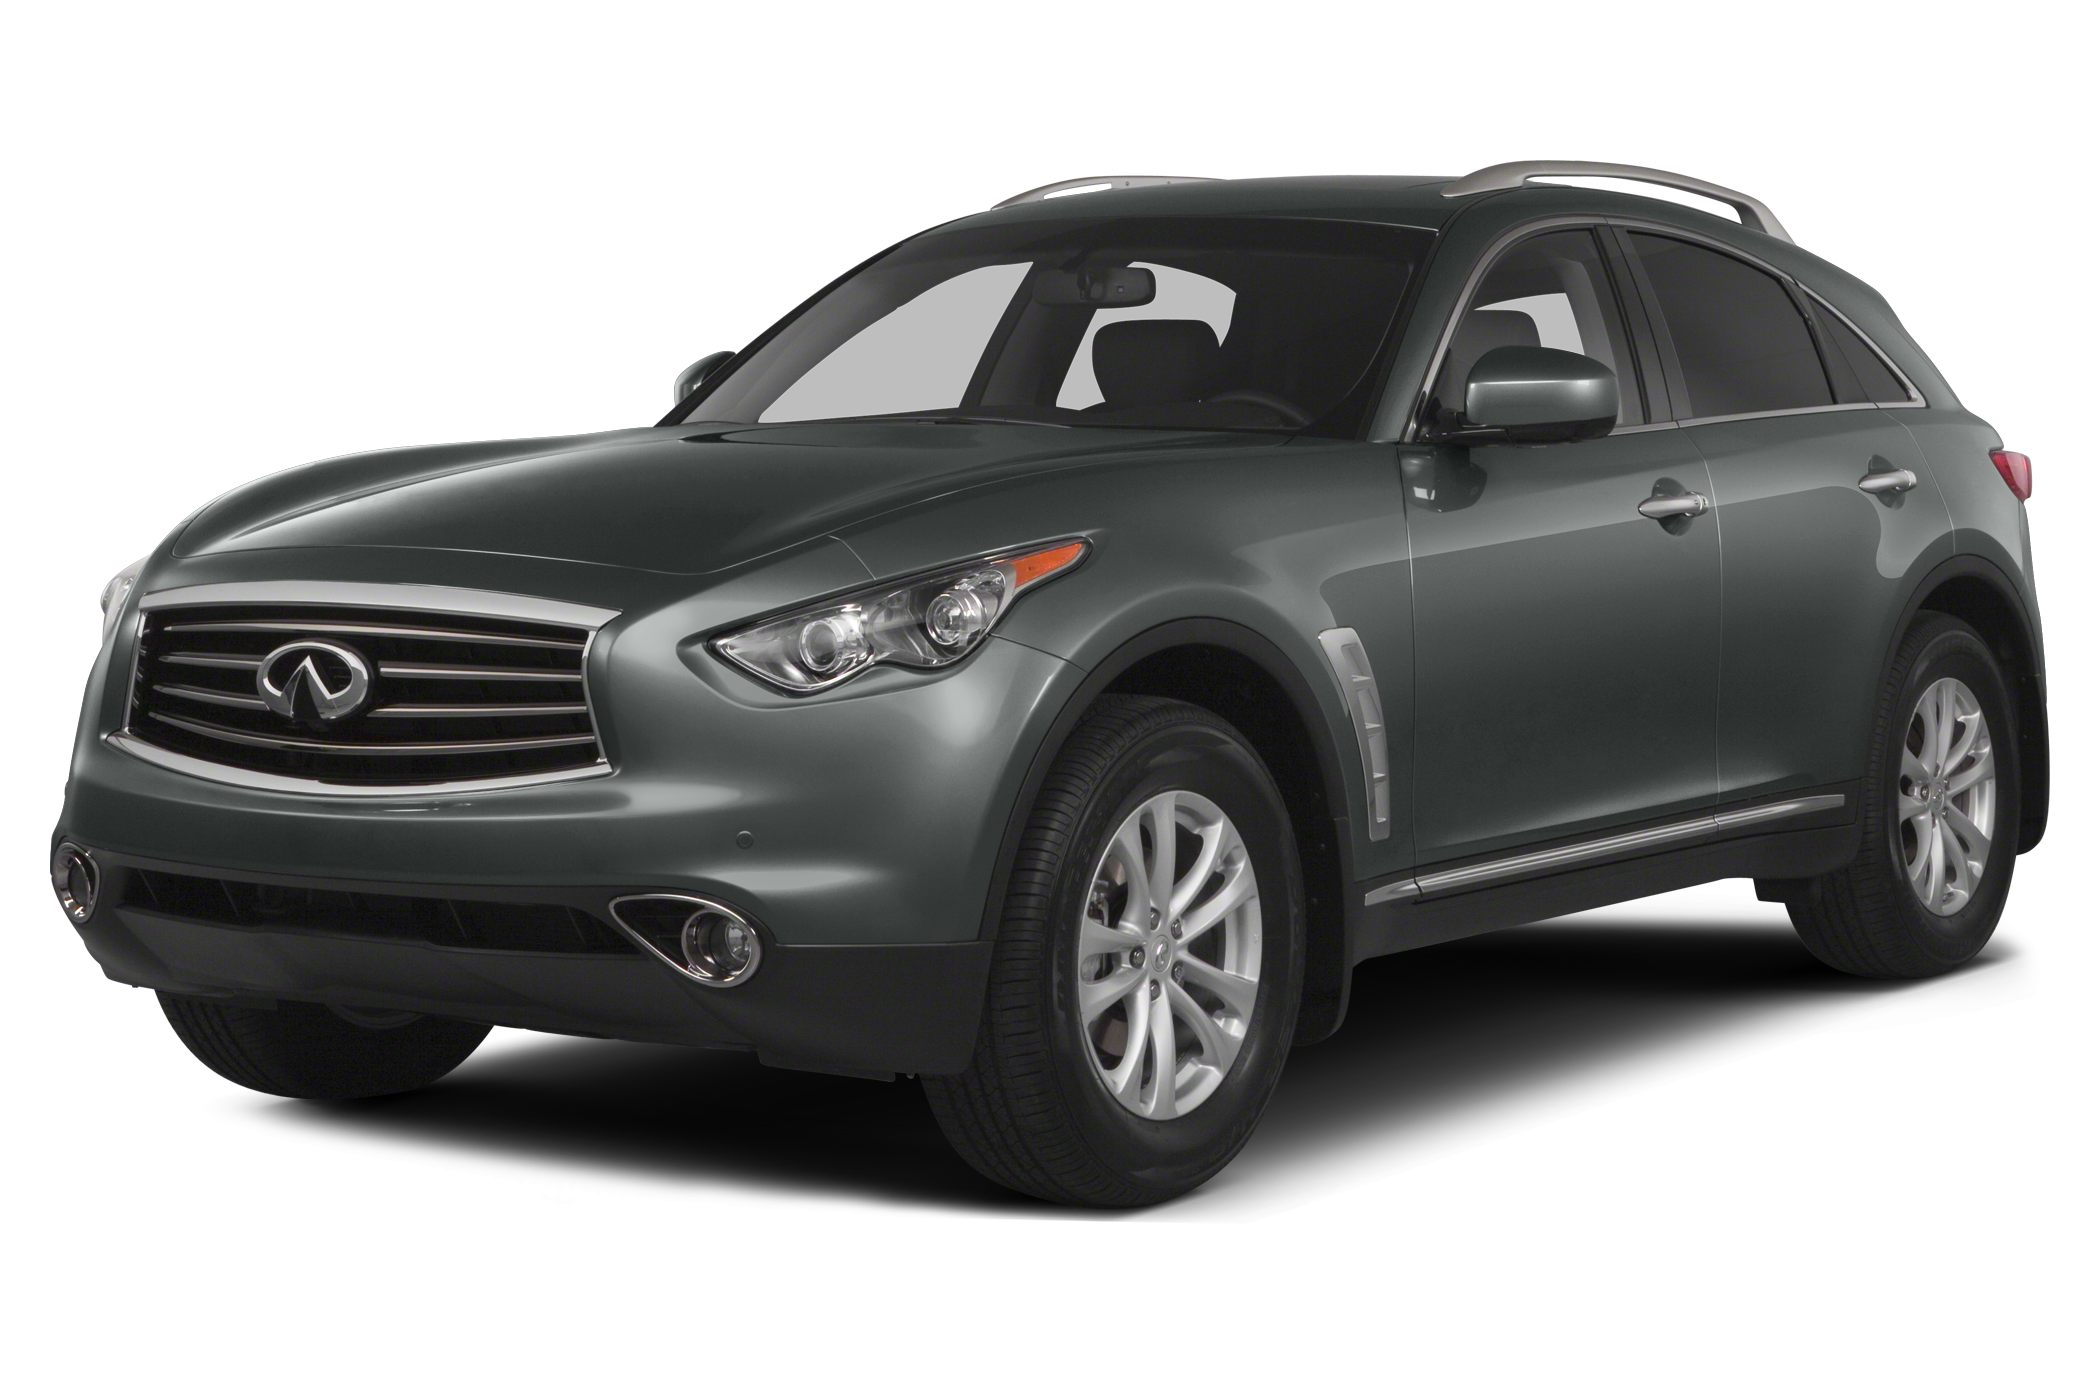 2014 infiniti qx70 information and photos momentcar. Black Bedroom Furniture Sets. Home Design Ideas